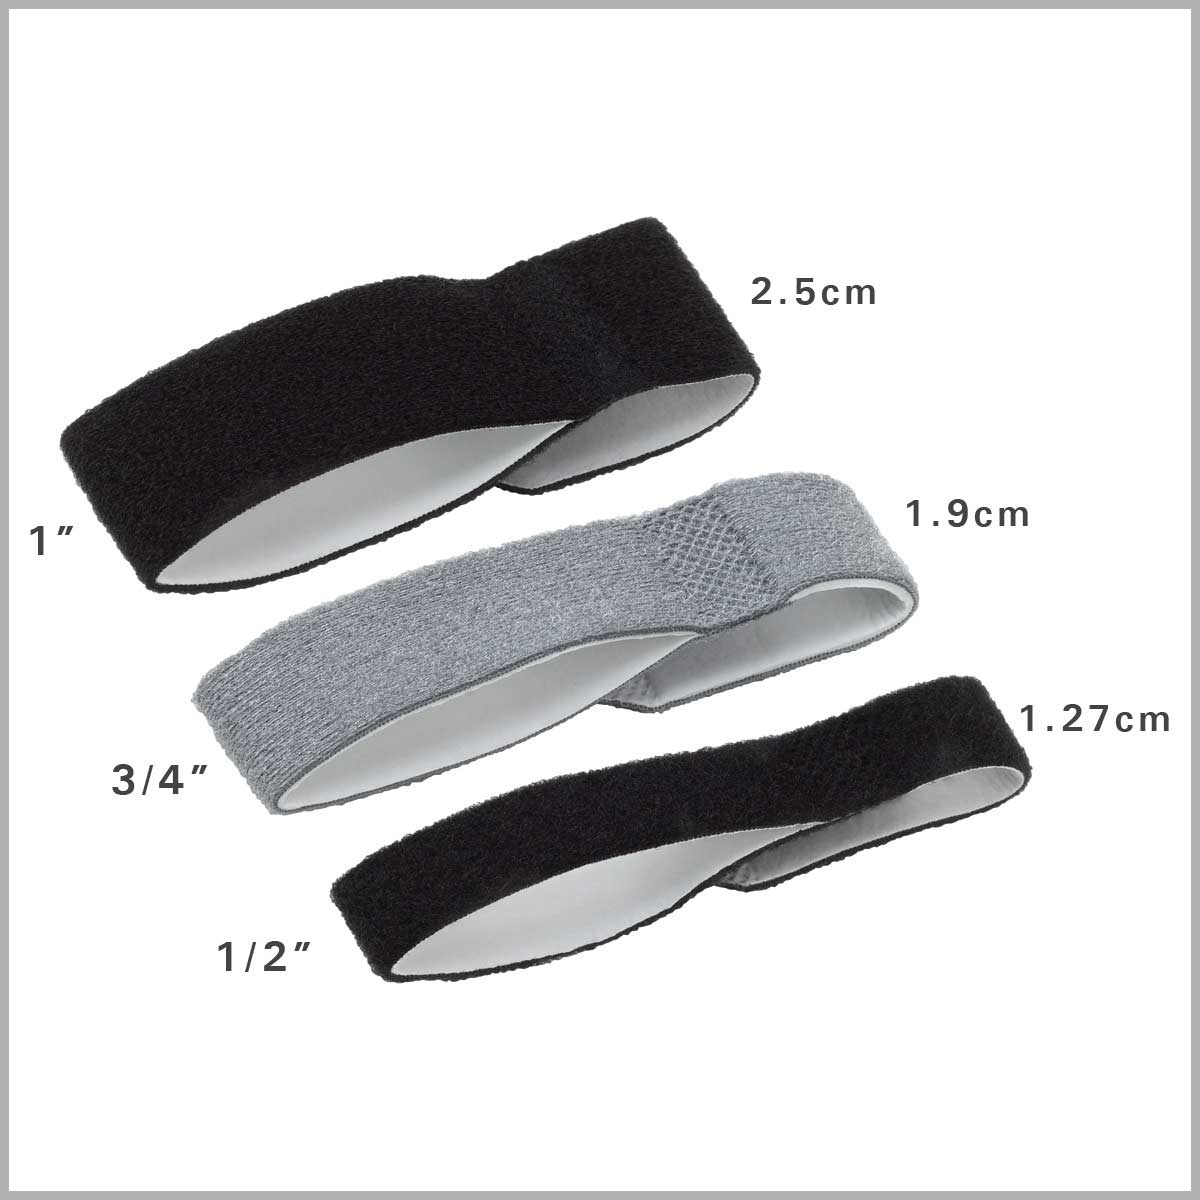 3pp Buddy Loops are available in 3 sizes: 1/2-inch, 3/4-inch & 1-inch